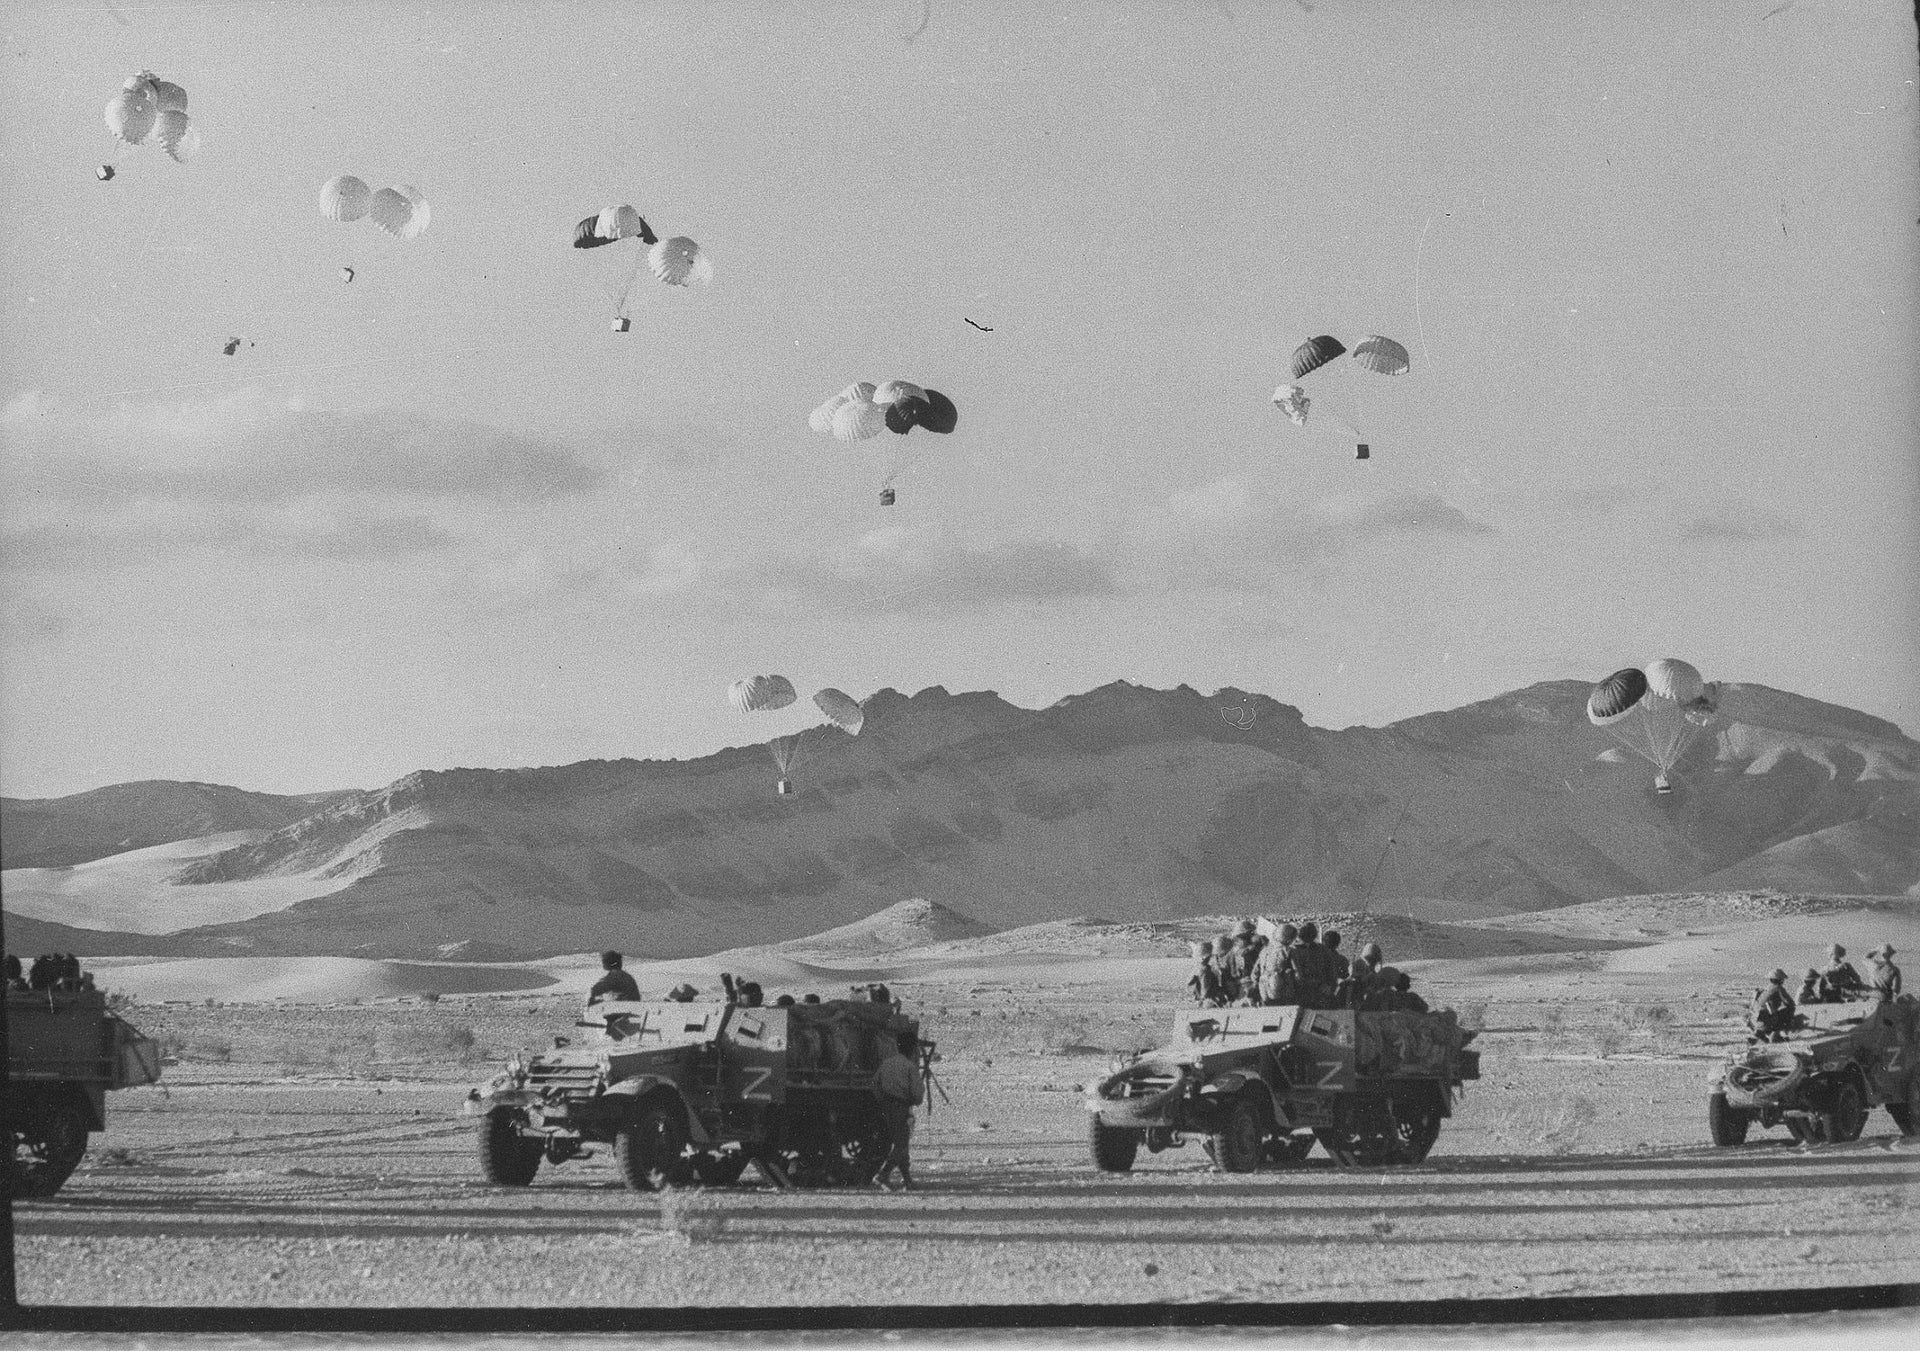 Israeli supplies are air dropped to troops in the Sinai, June 1967.